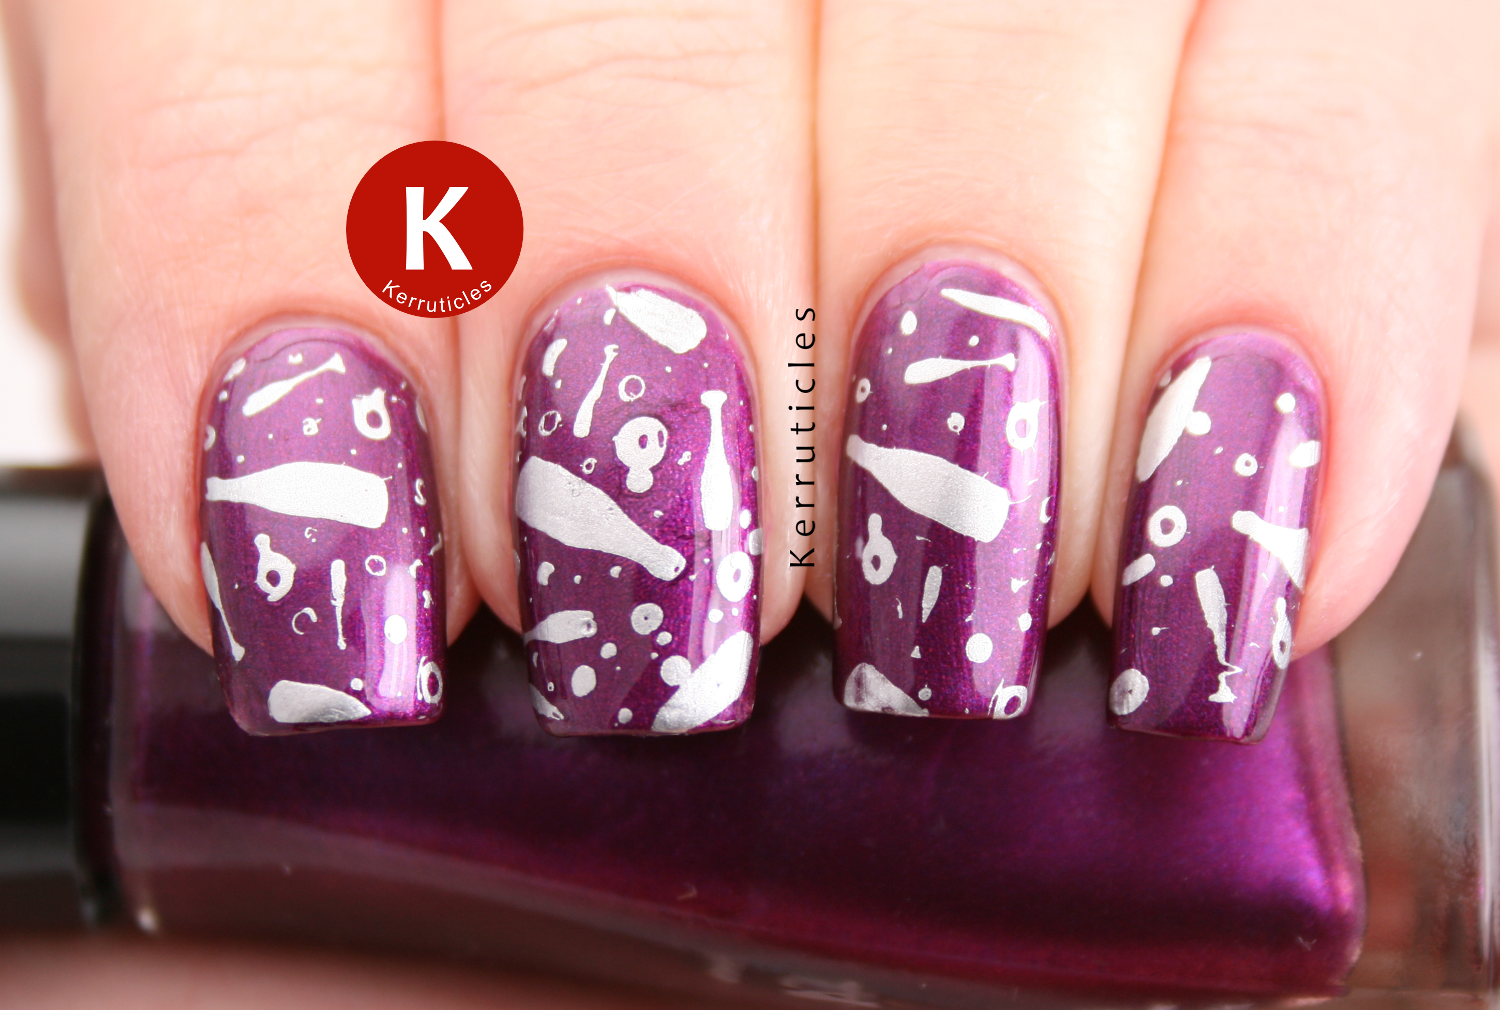 Sally Hansen Pronto Purple stamped with Cheeky CH9 champagne glasses